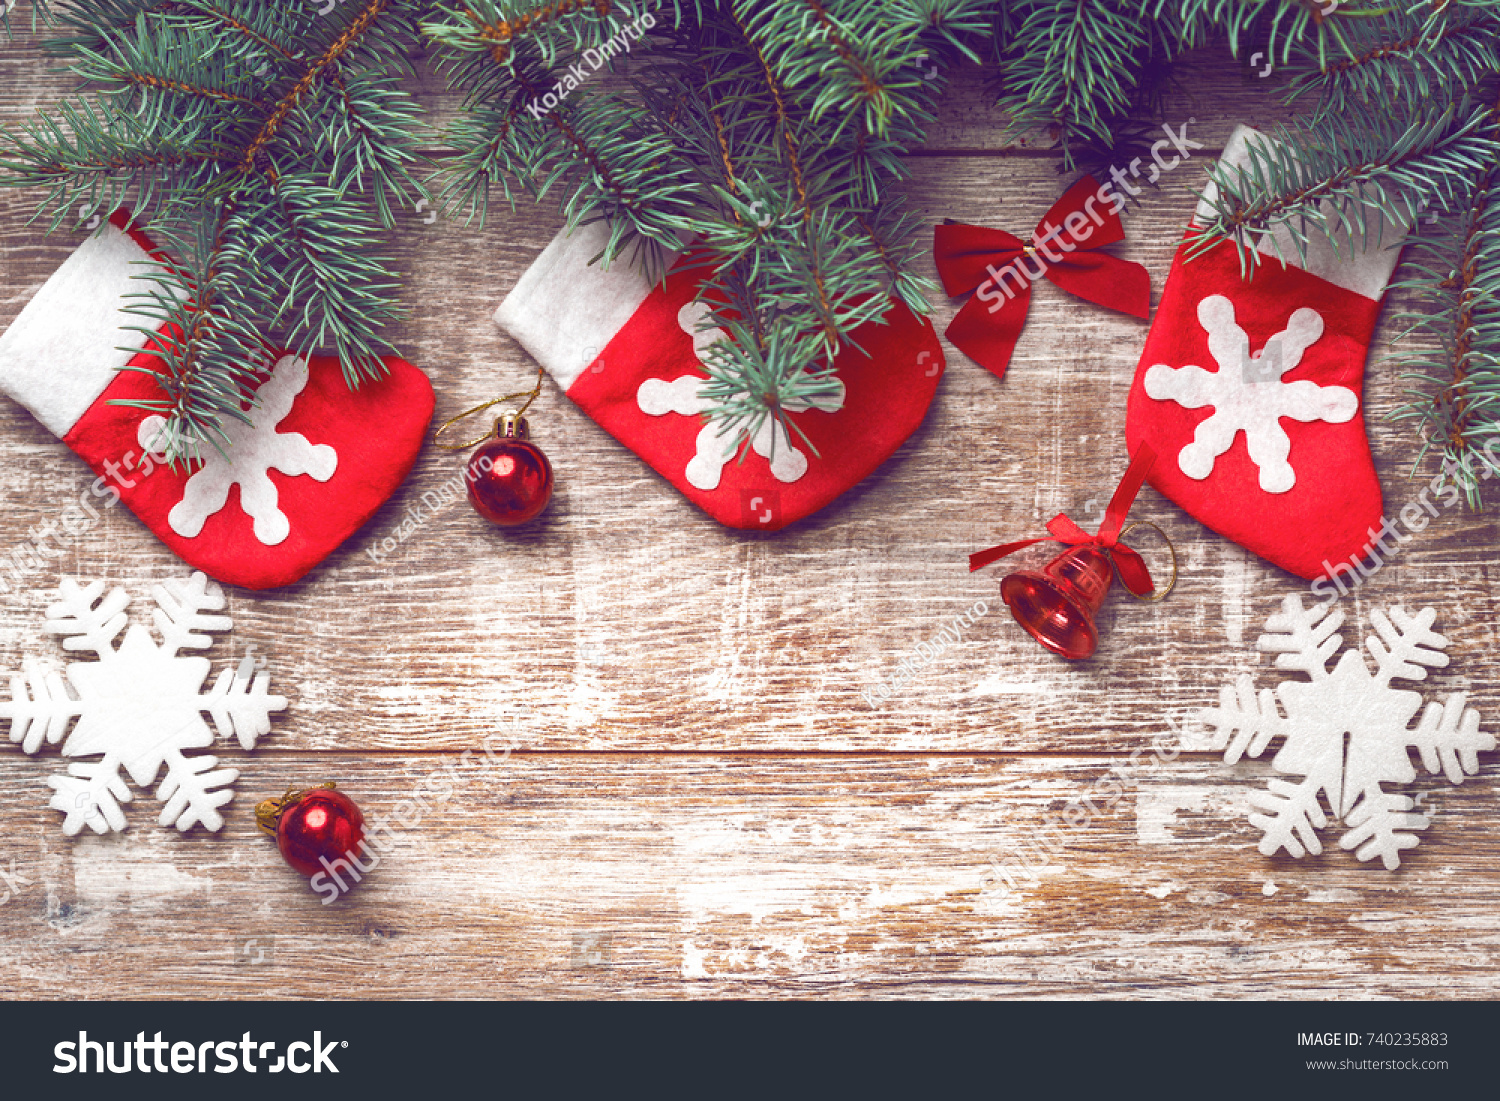 Christmas Decorations On Old Boards Christmas Stock Photo (Edit Now ...